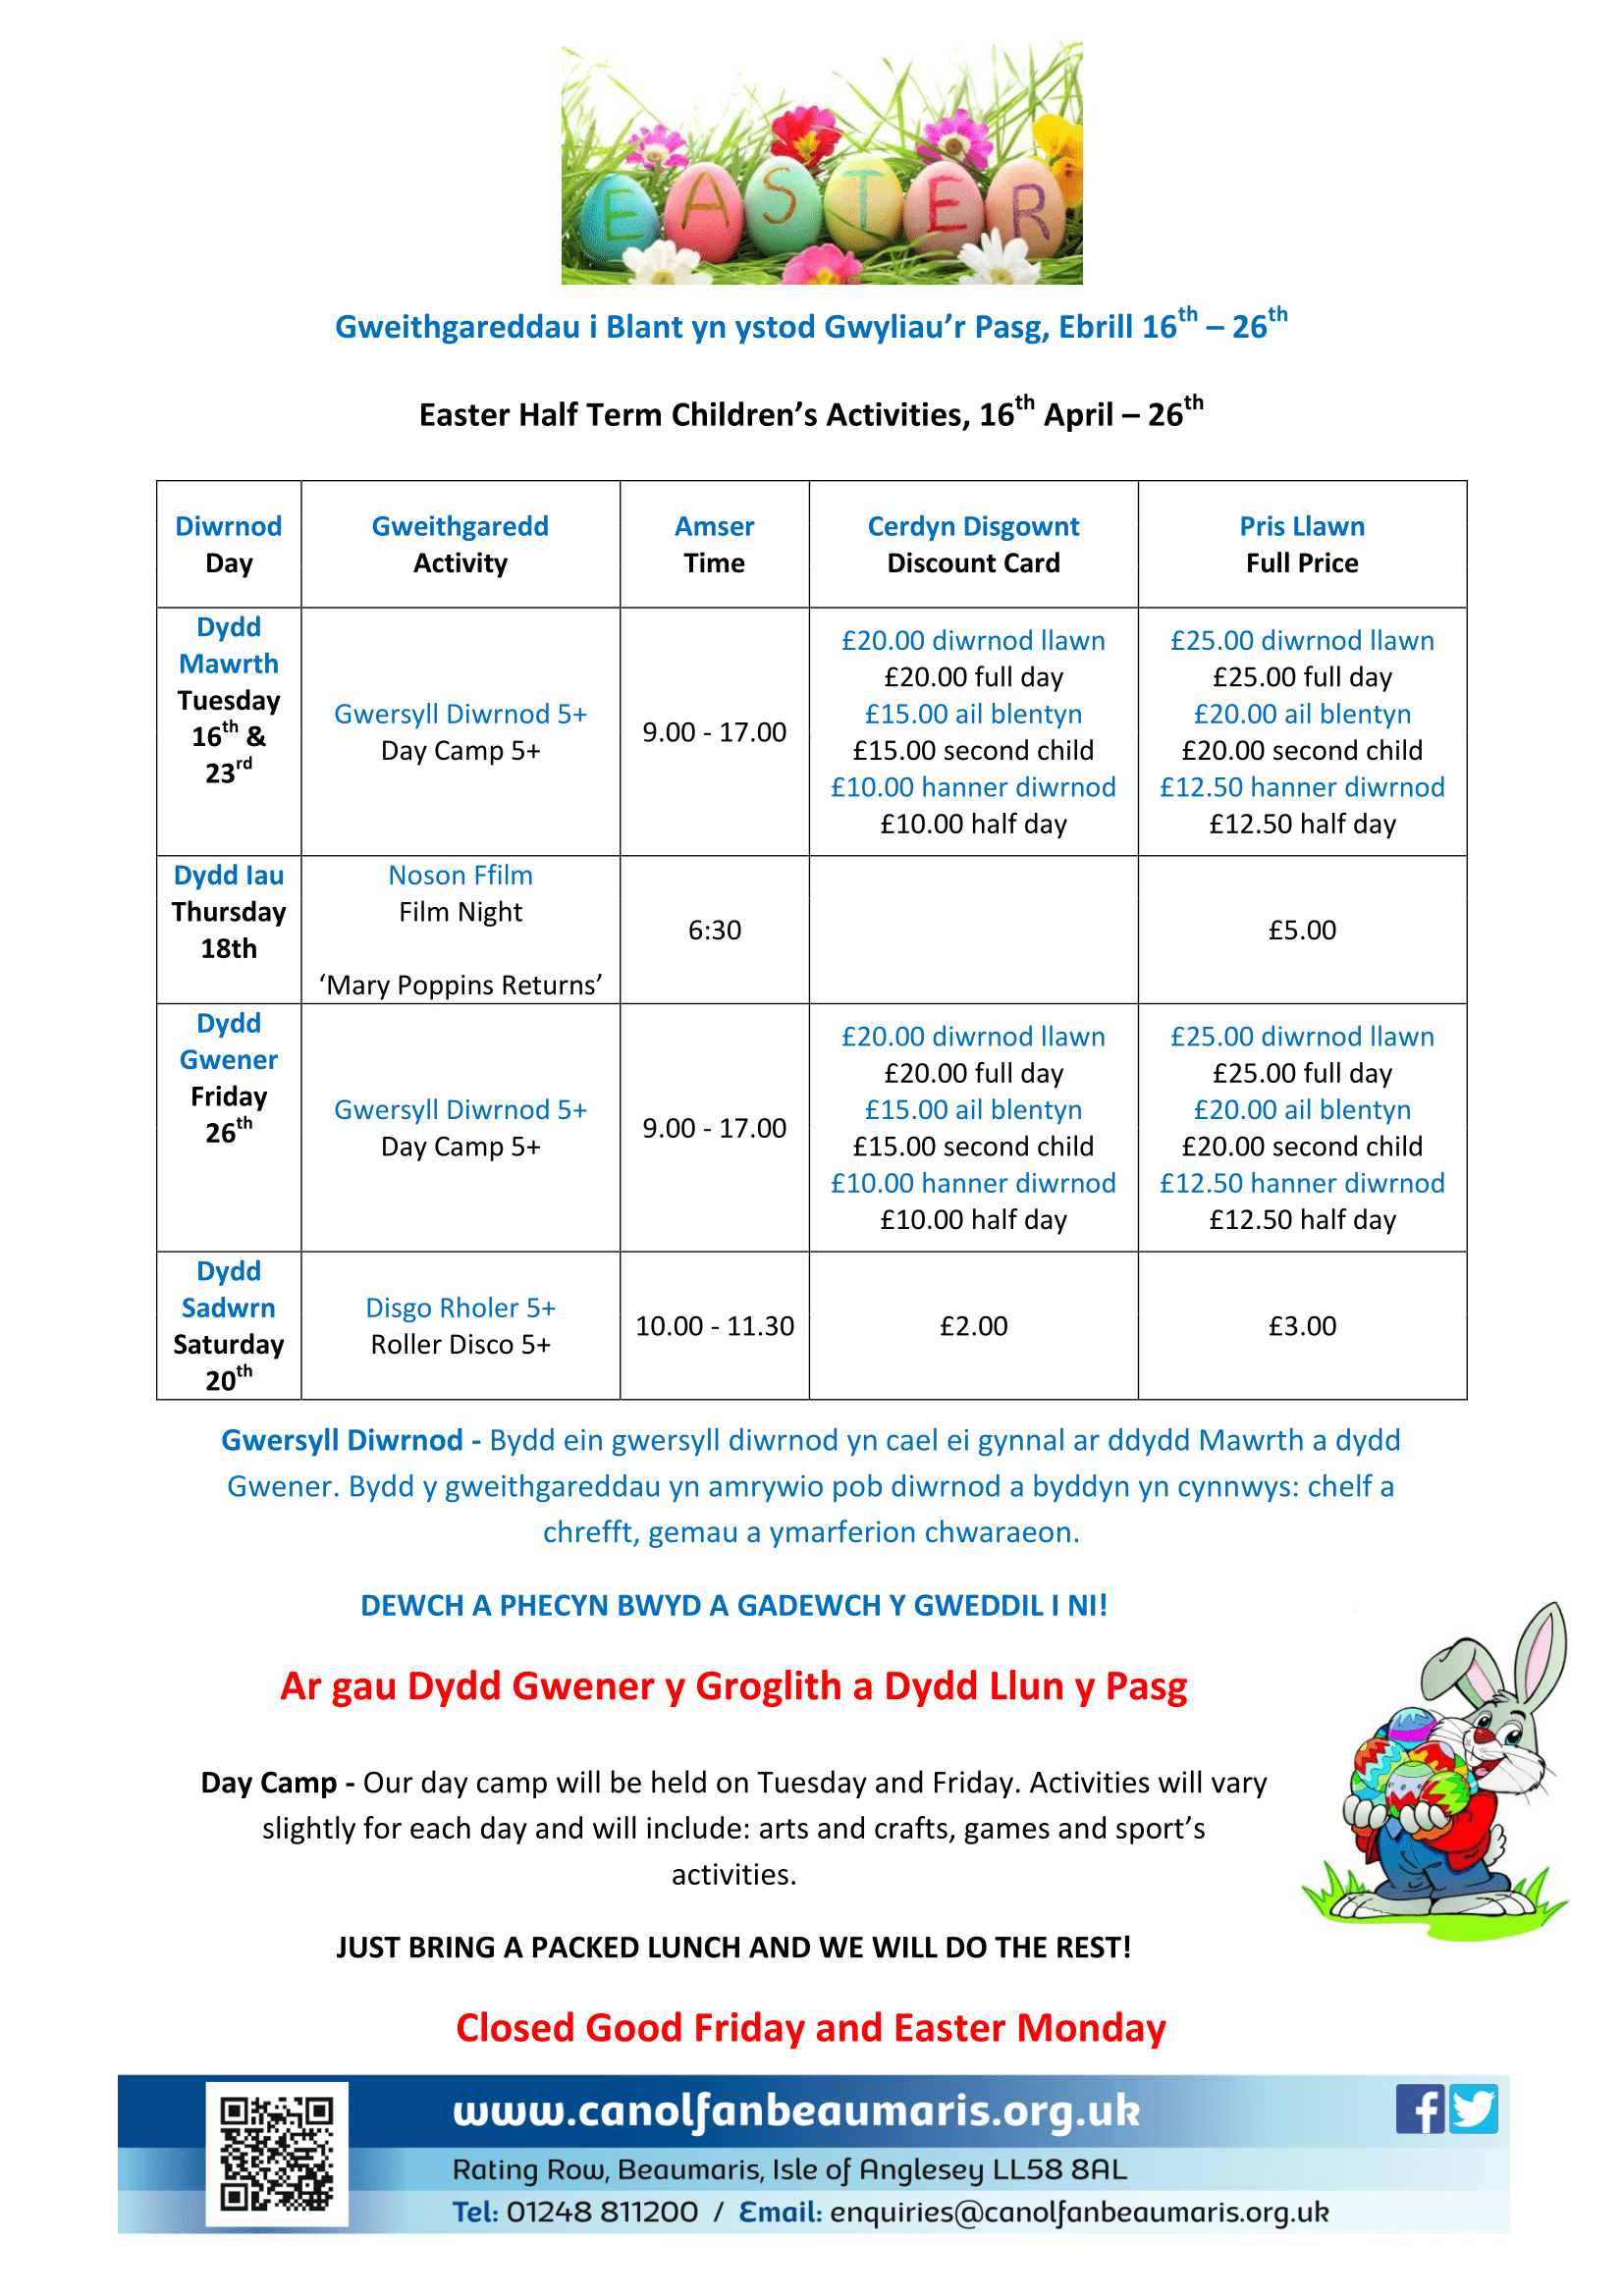 Easter: Children's Activities Pasg: Gweithgareddau I Blant